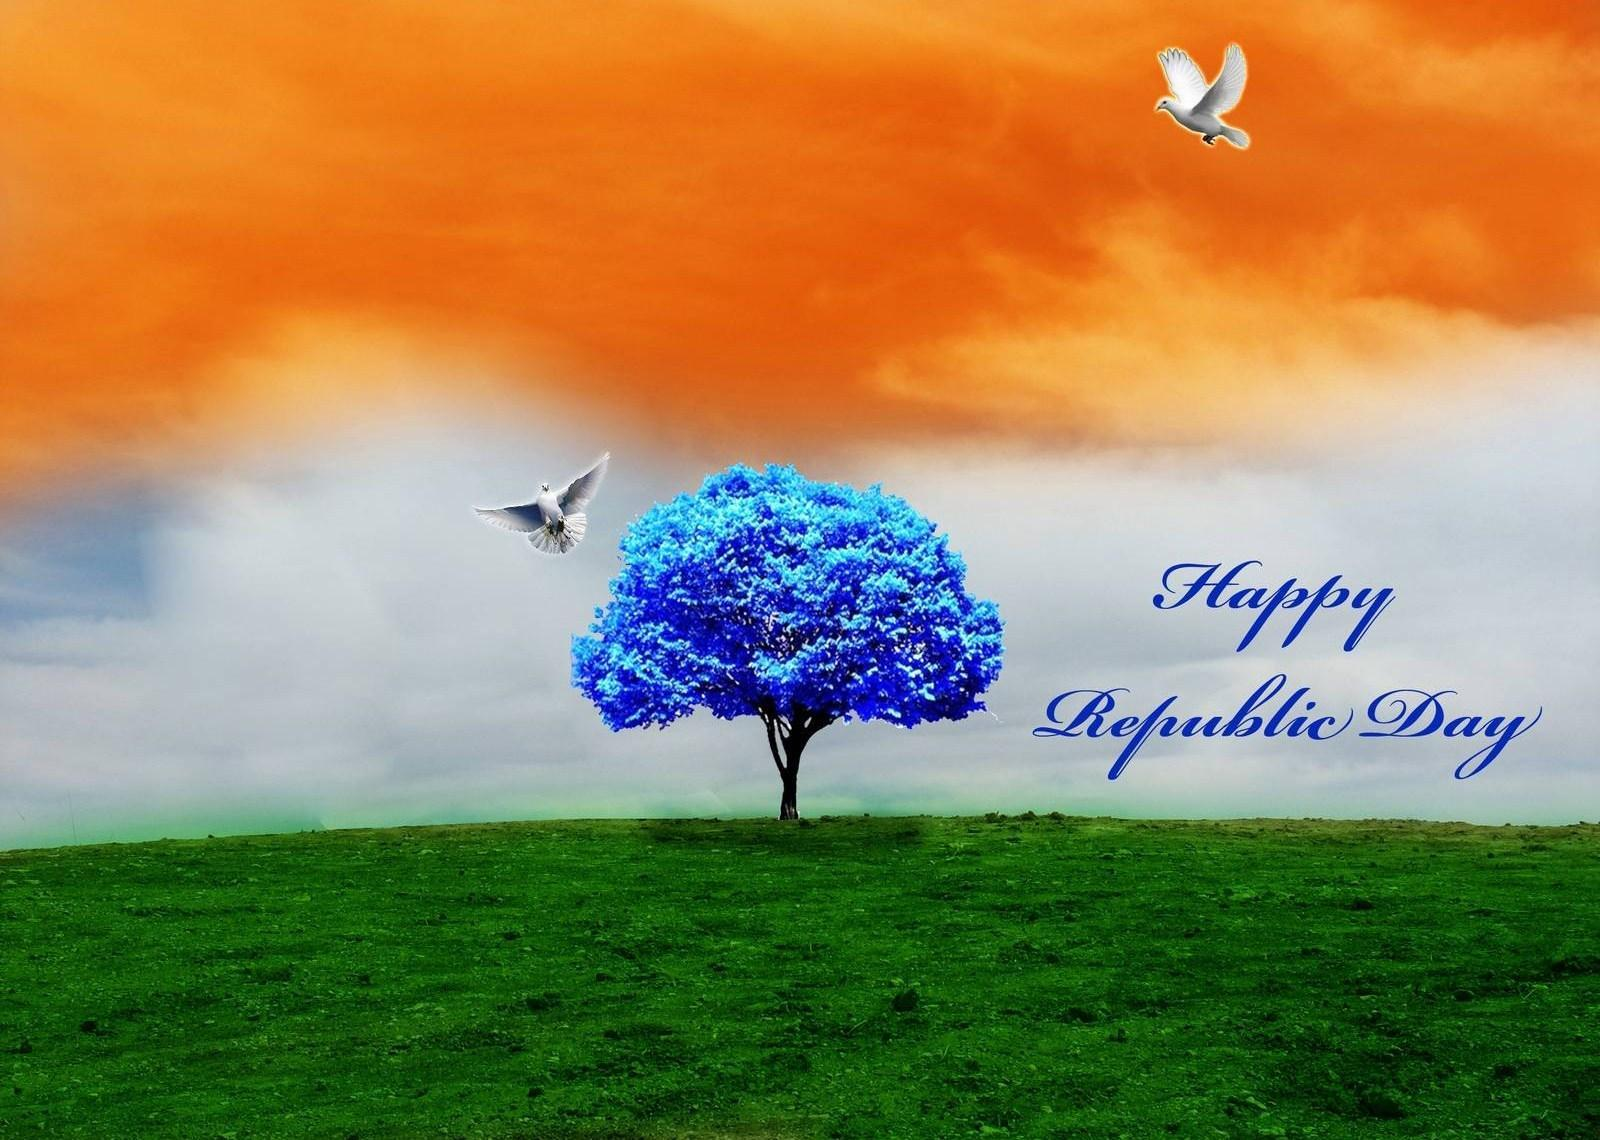 Indian Flag Hd Wallpaper 1080p: Indian Flag 4K Wallpapers